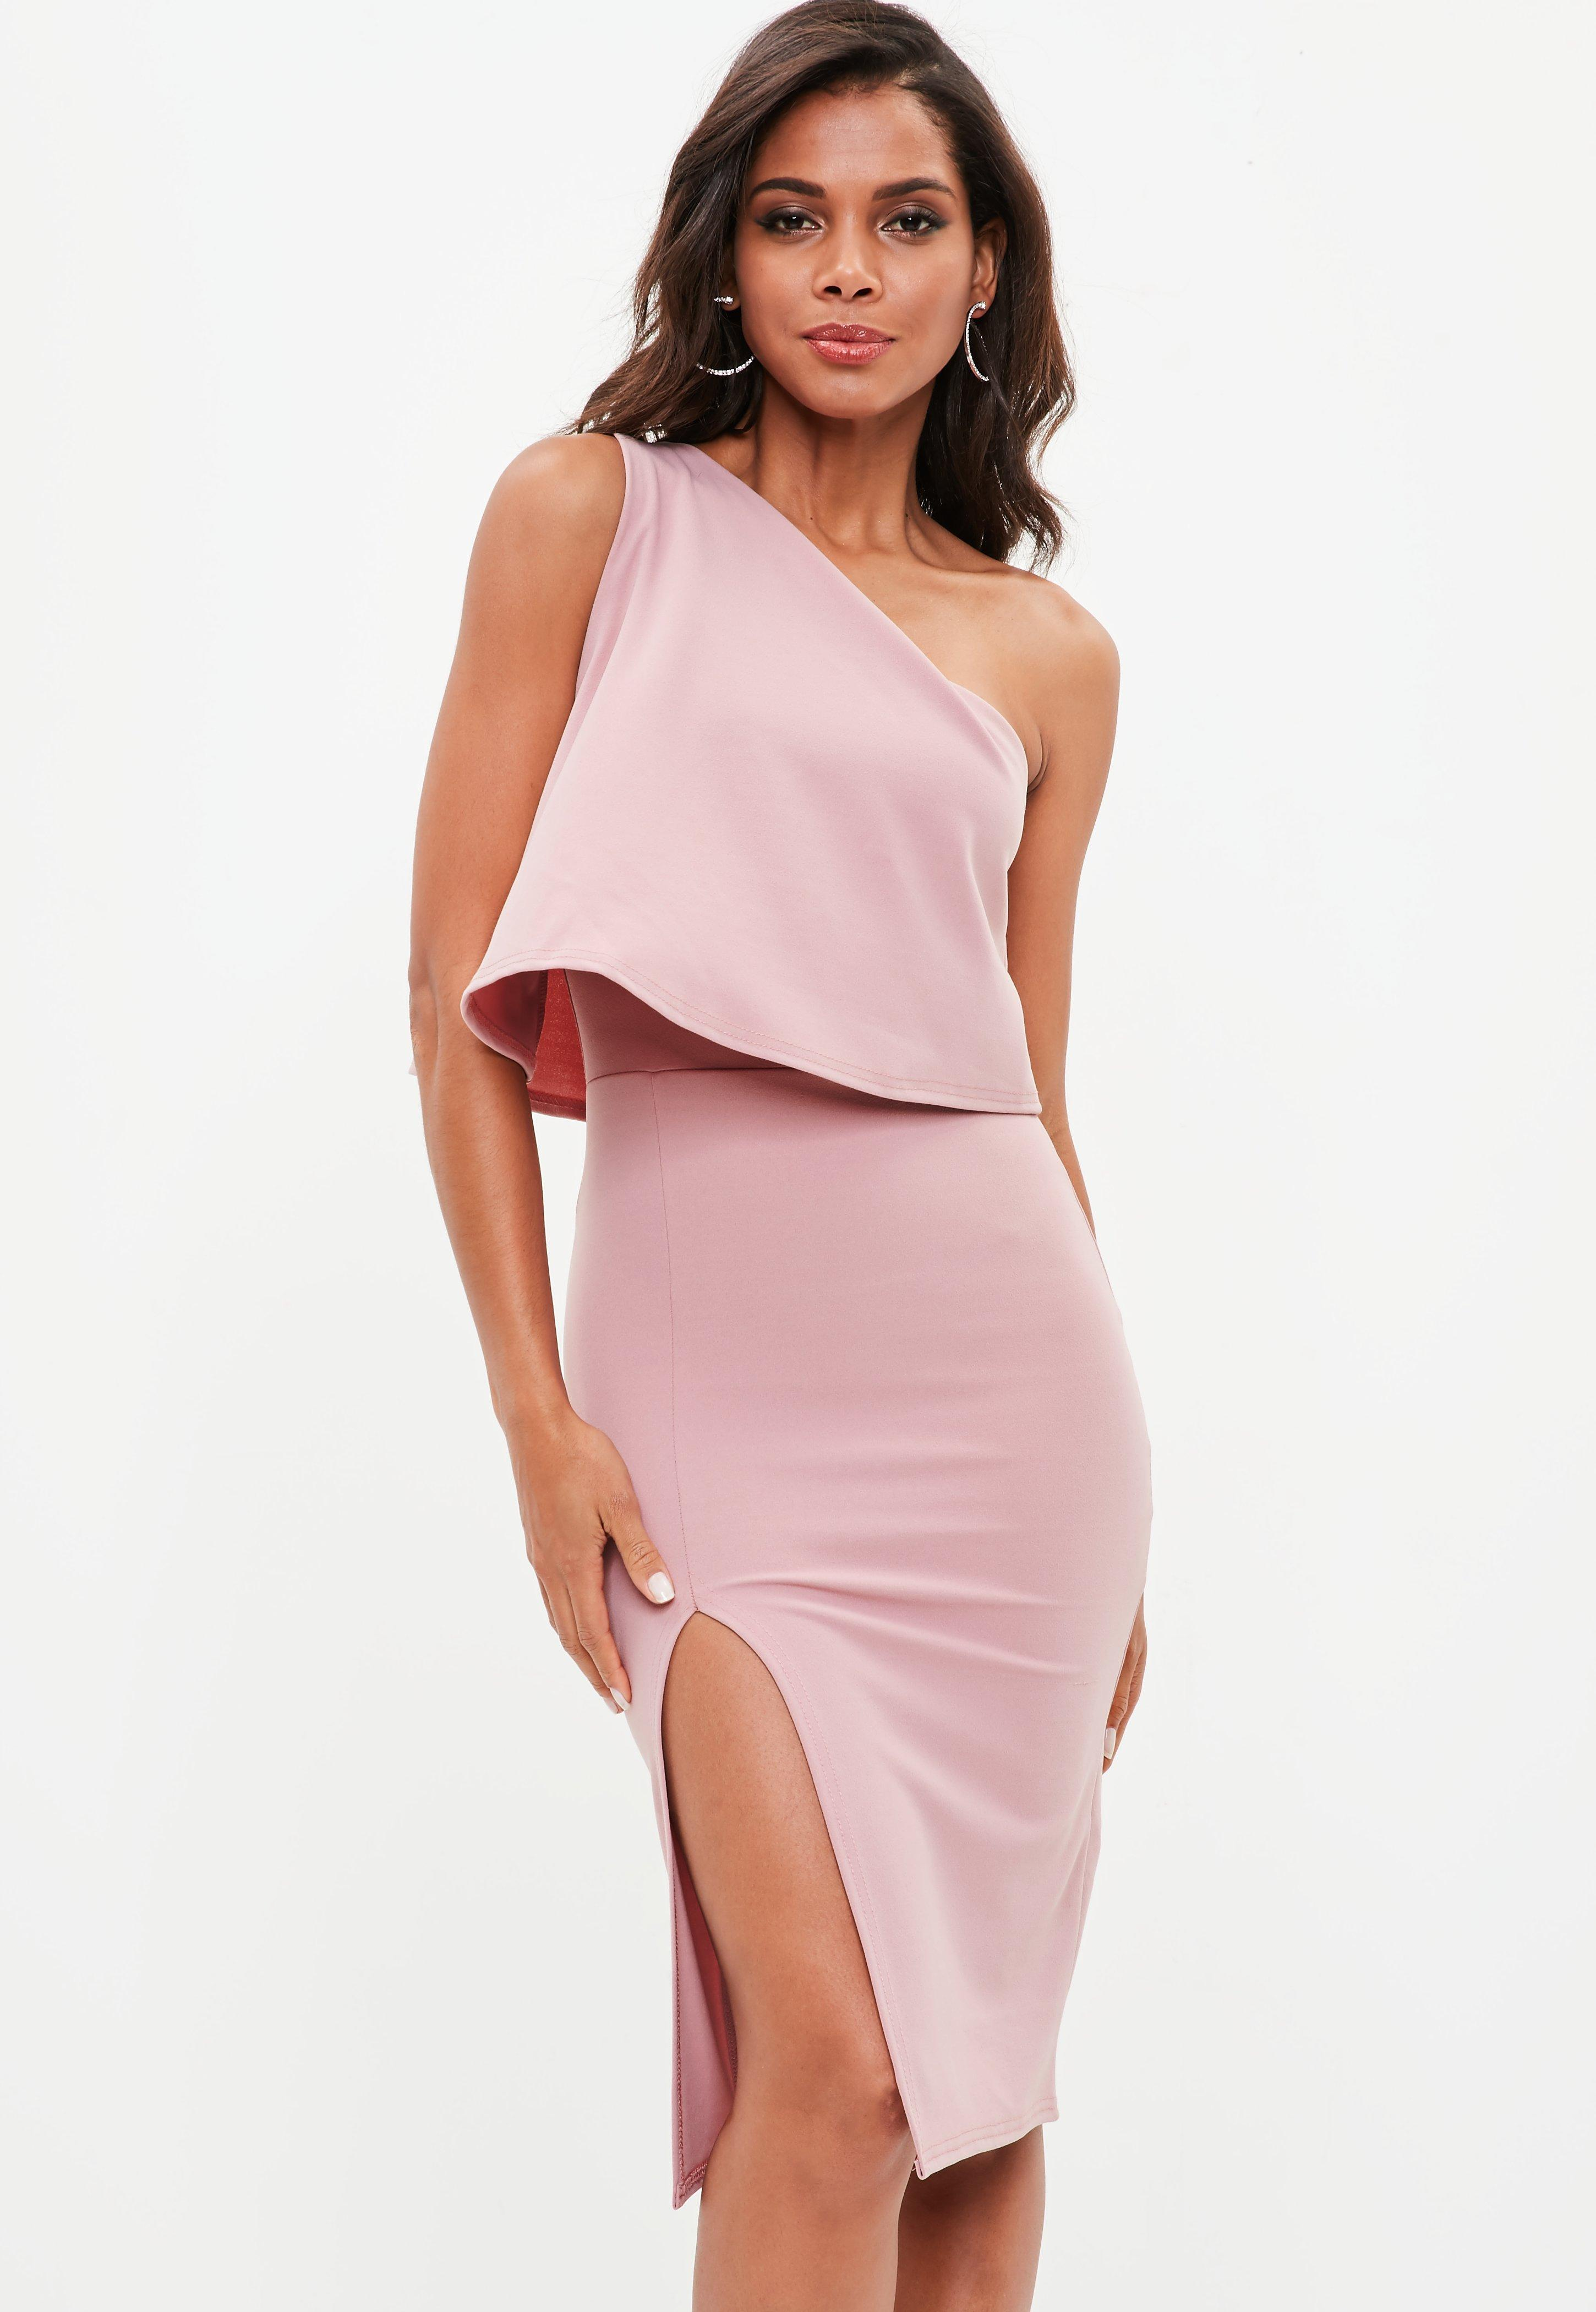 Cocktailkleider online - Missguided DE